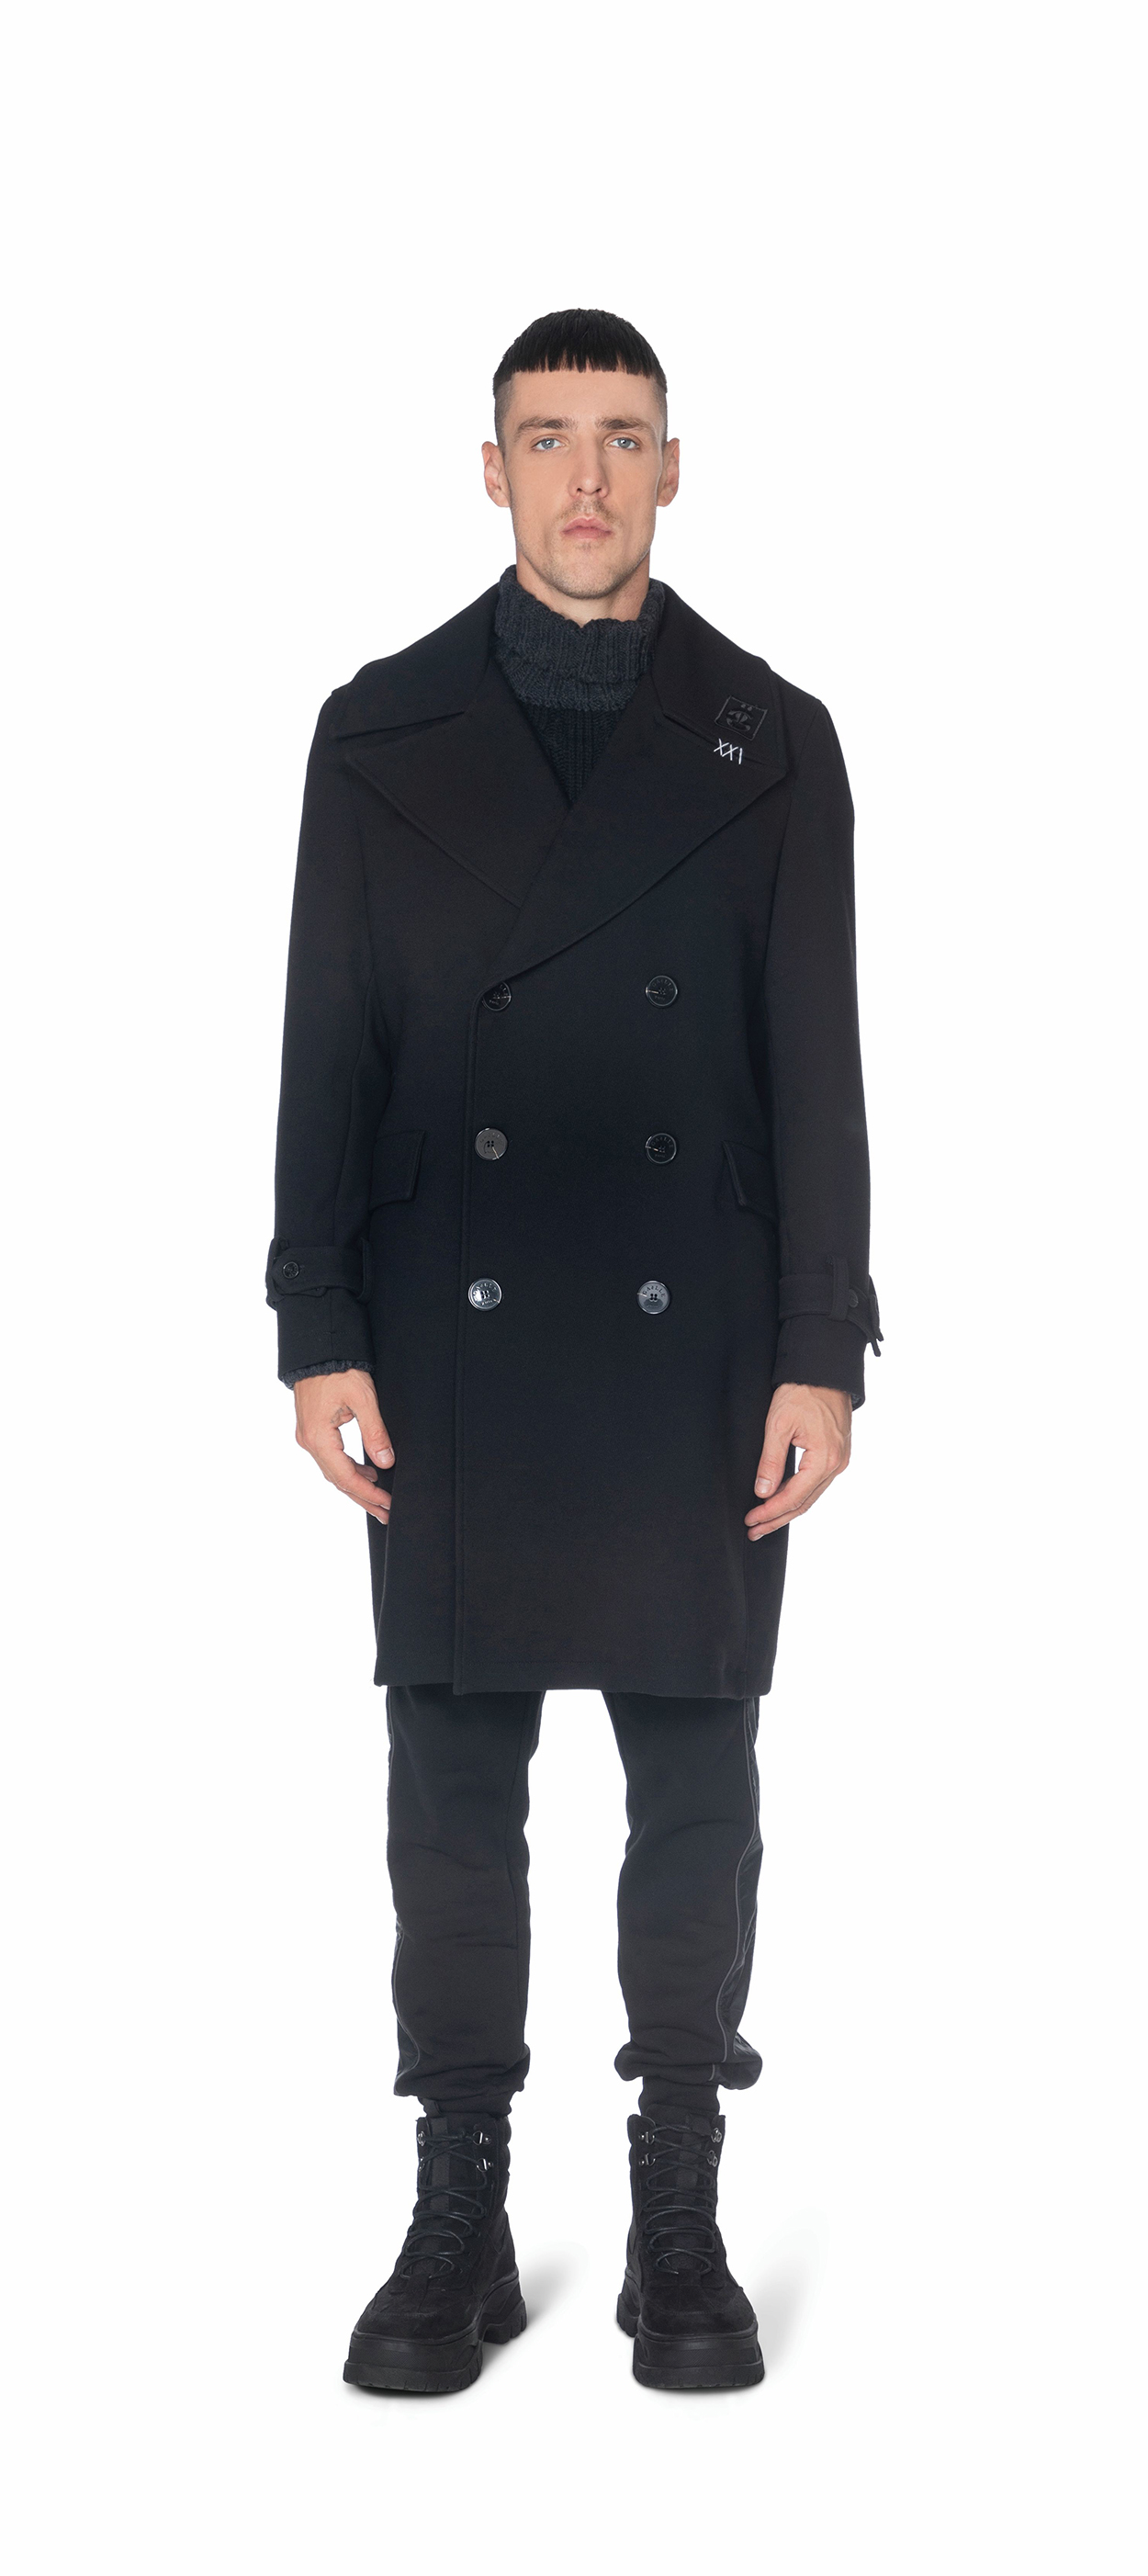 COAT - GBU2921/1 - GAELLE PARIS